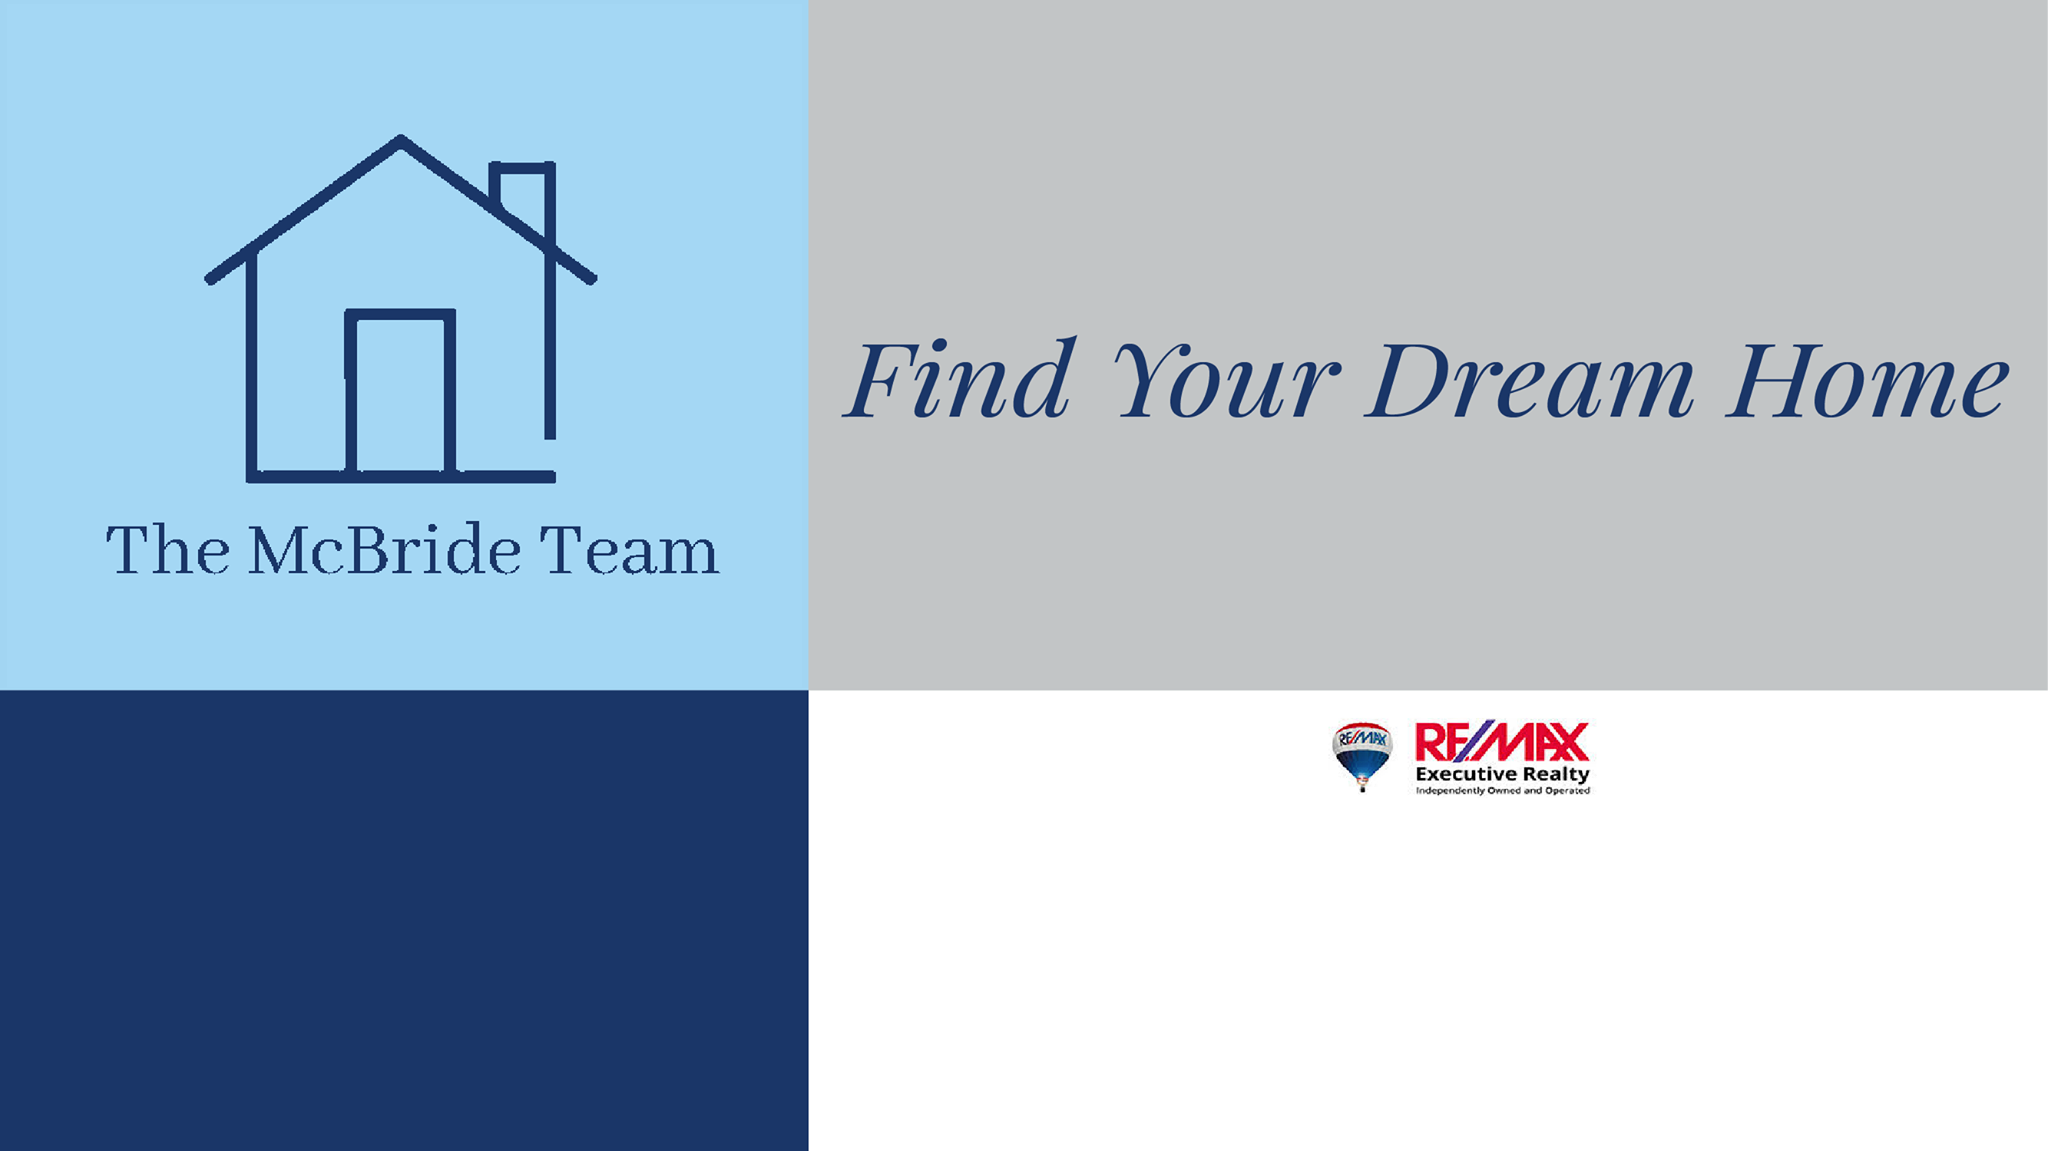 Re/max Executive Realty